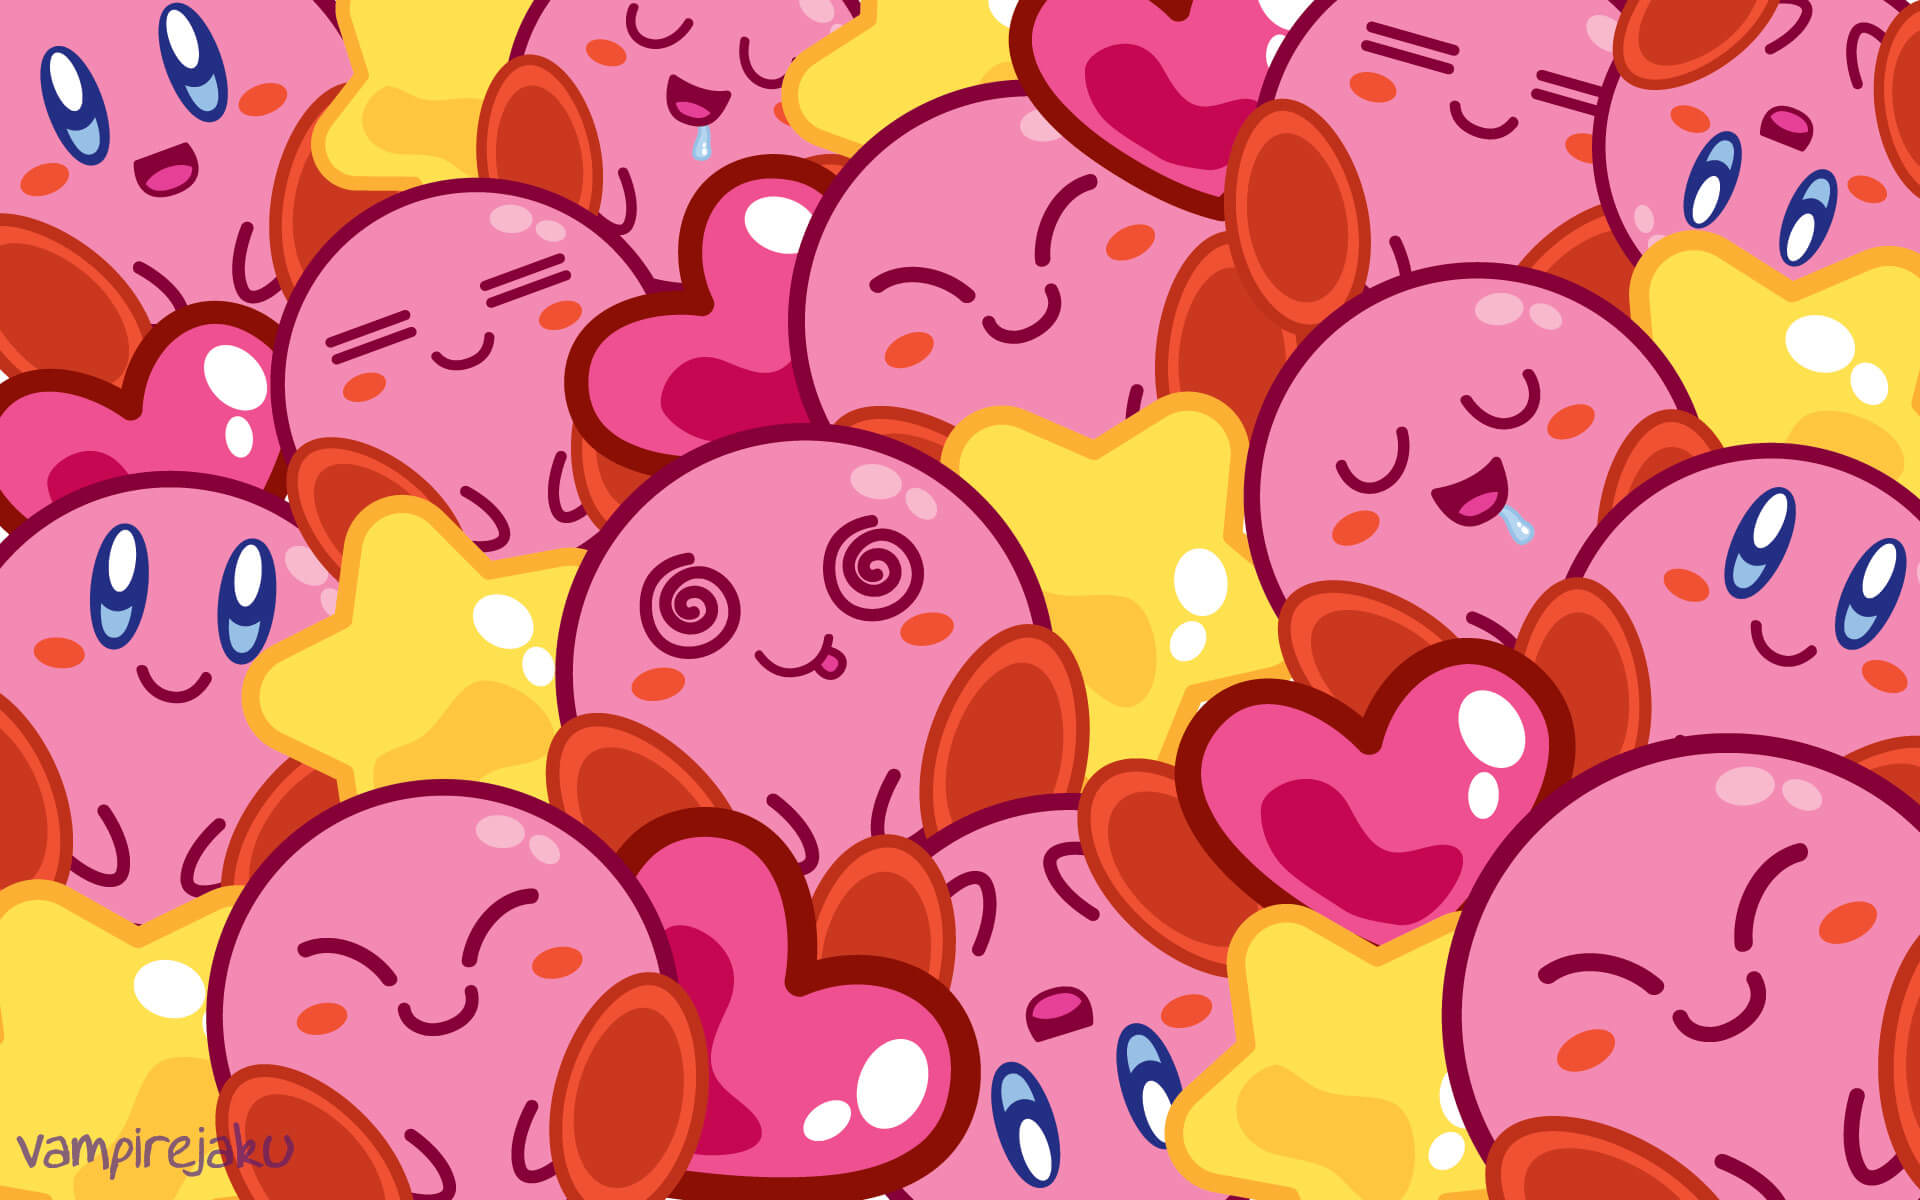 Creative Kirby Wallpapers